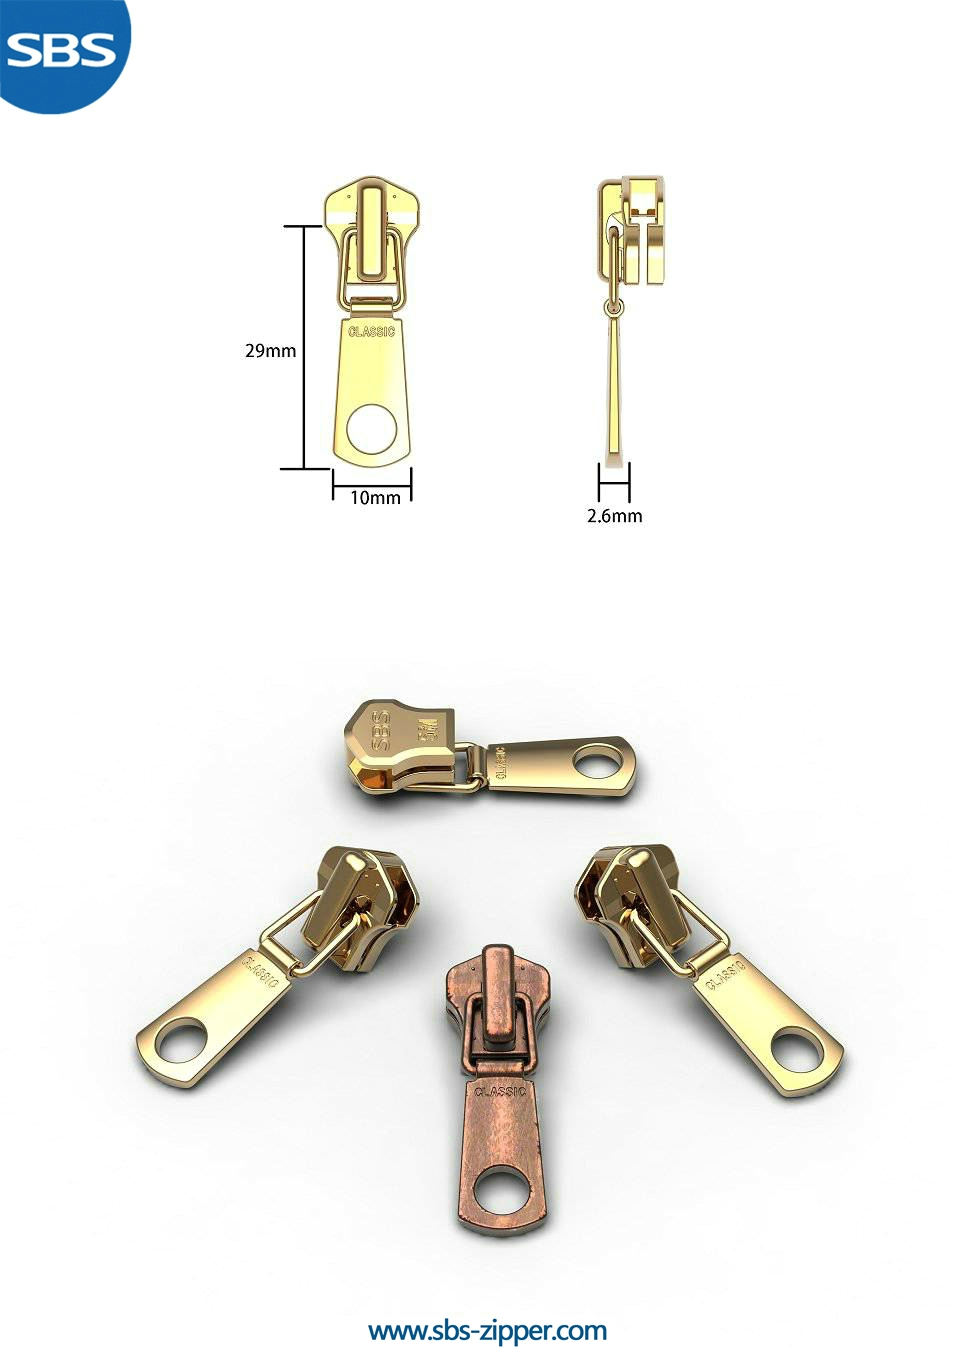 Brass Zipper Pulls Supplier 16AWC003 | SBS Zipper